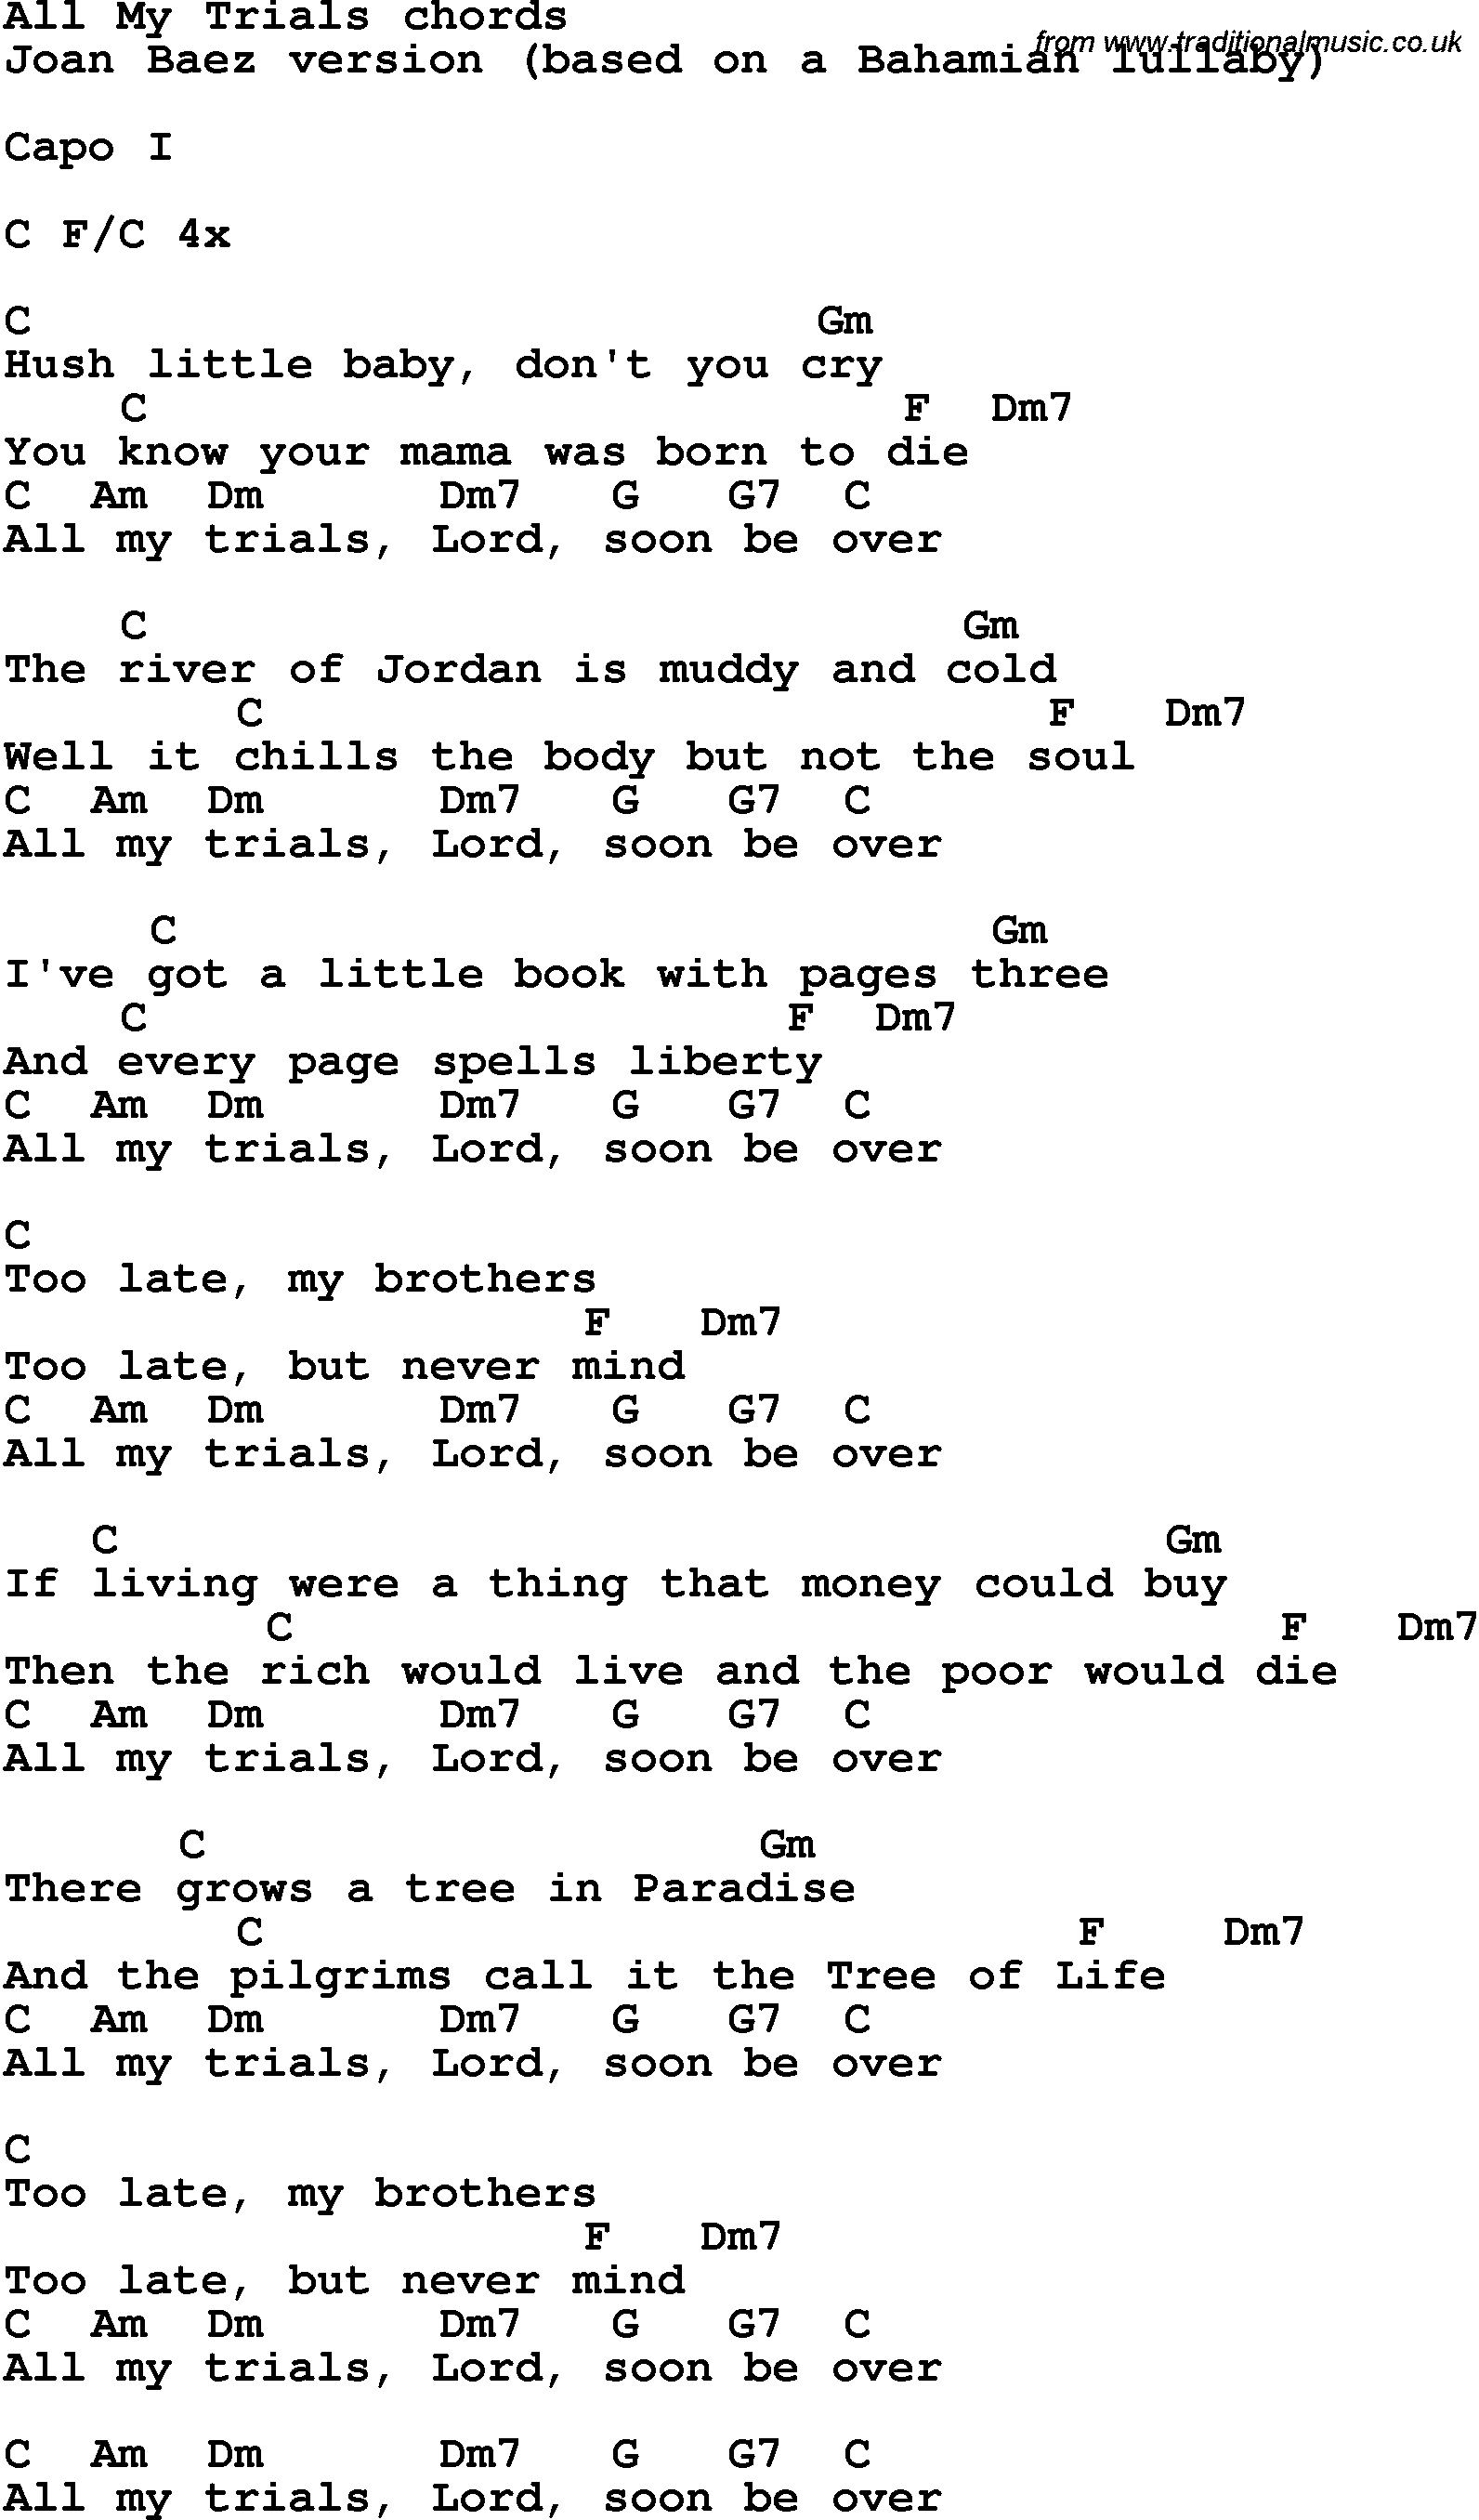 Song lyrics with guitar chords for all my trials joan baez song lyrics with guitar chords for all my trials joan baez hexwebz Choice Image